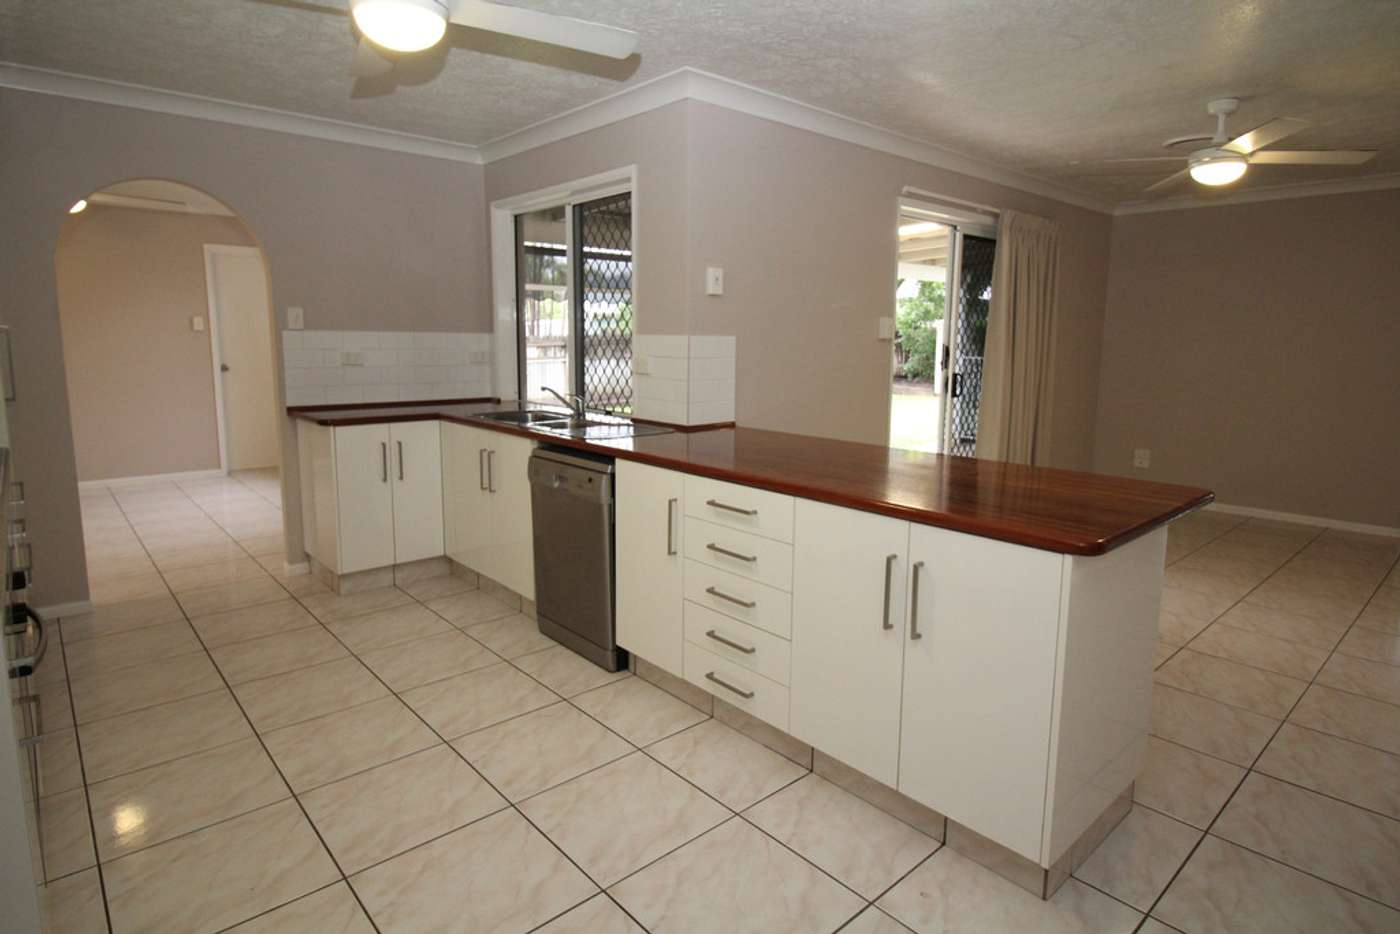 Main view of Homely house listing, 14 Nutwood Court, Annandale QLD 4814